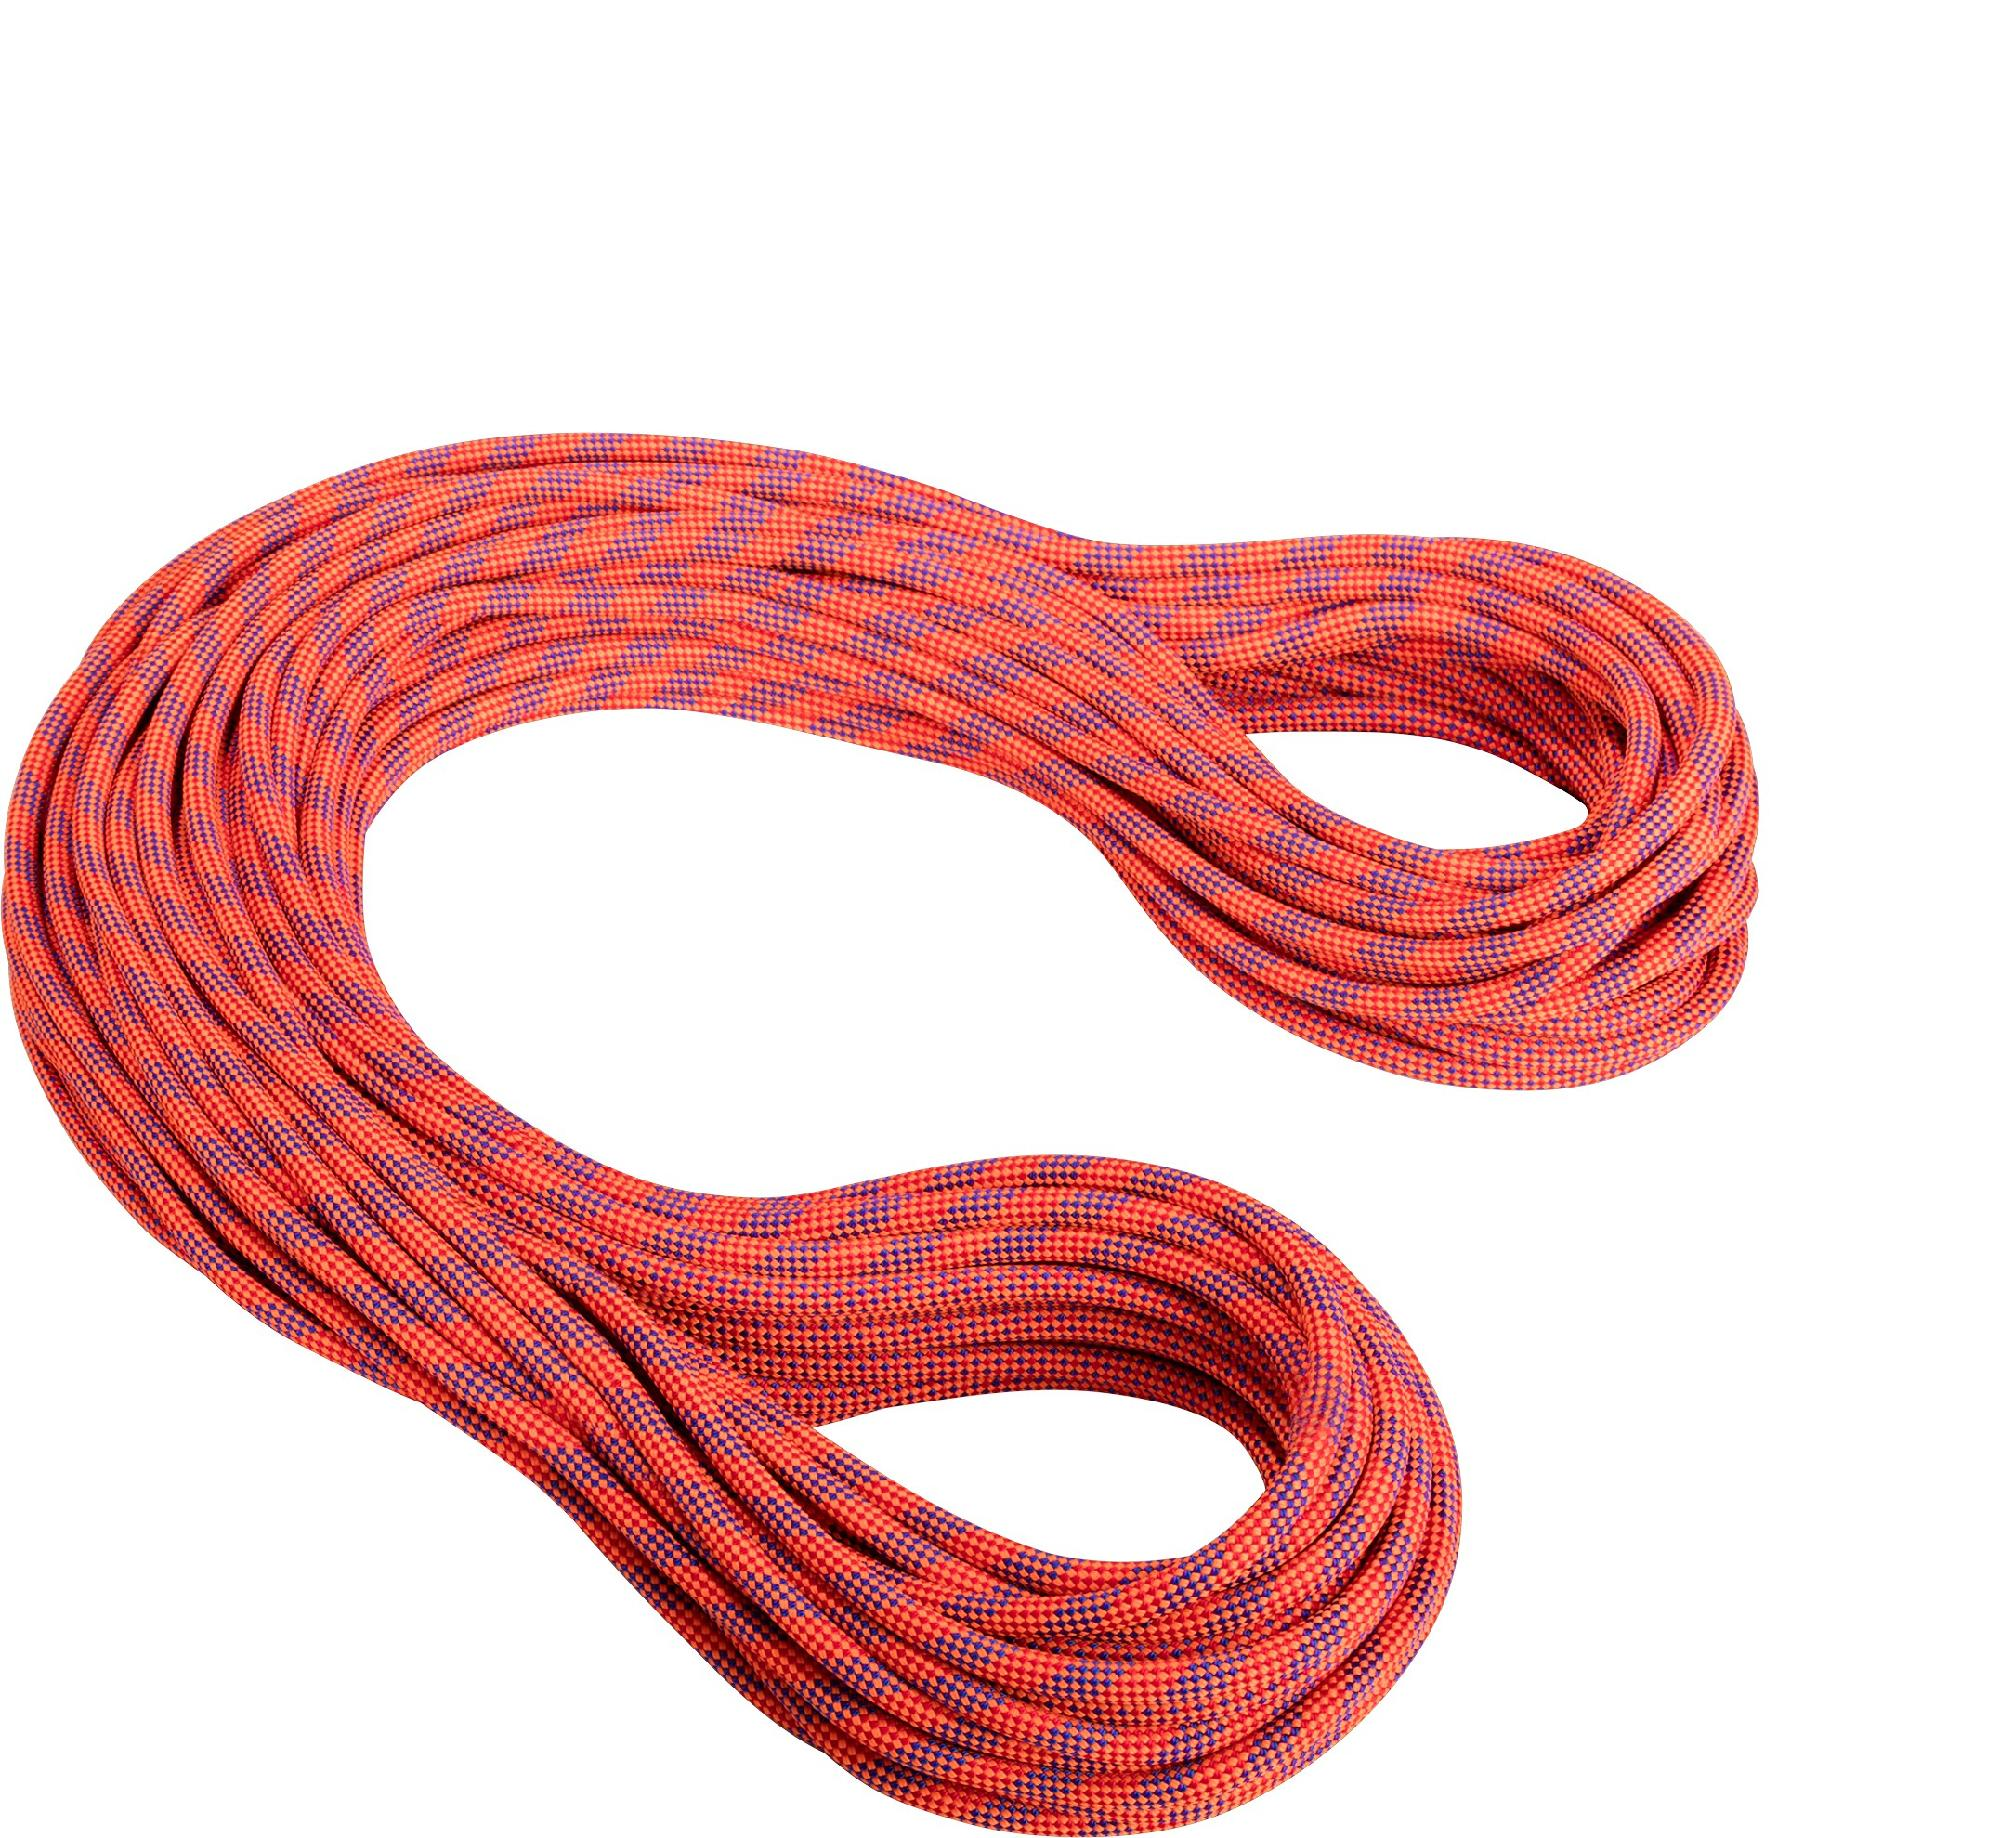 Mammut Eternity Duodess 9.8mm x 60m Dry Rope